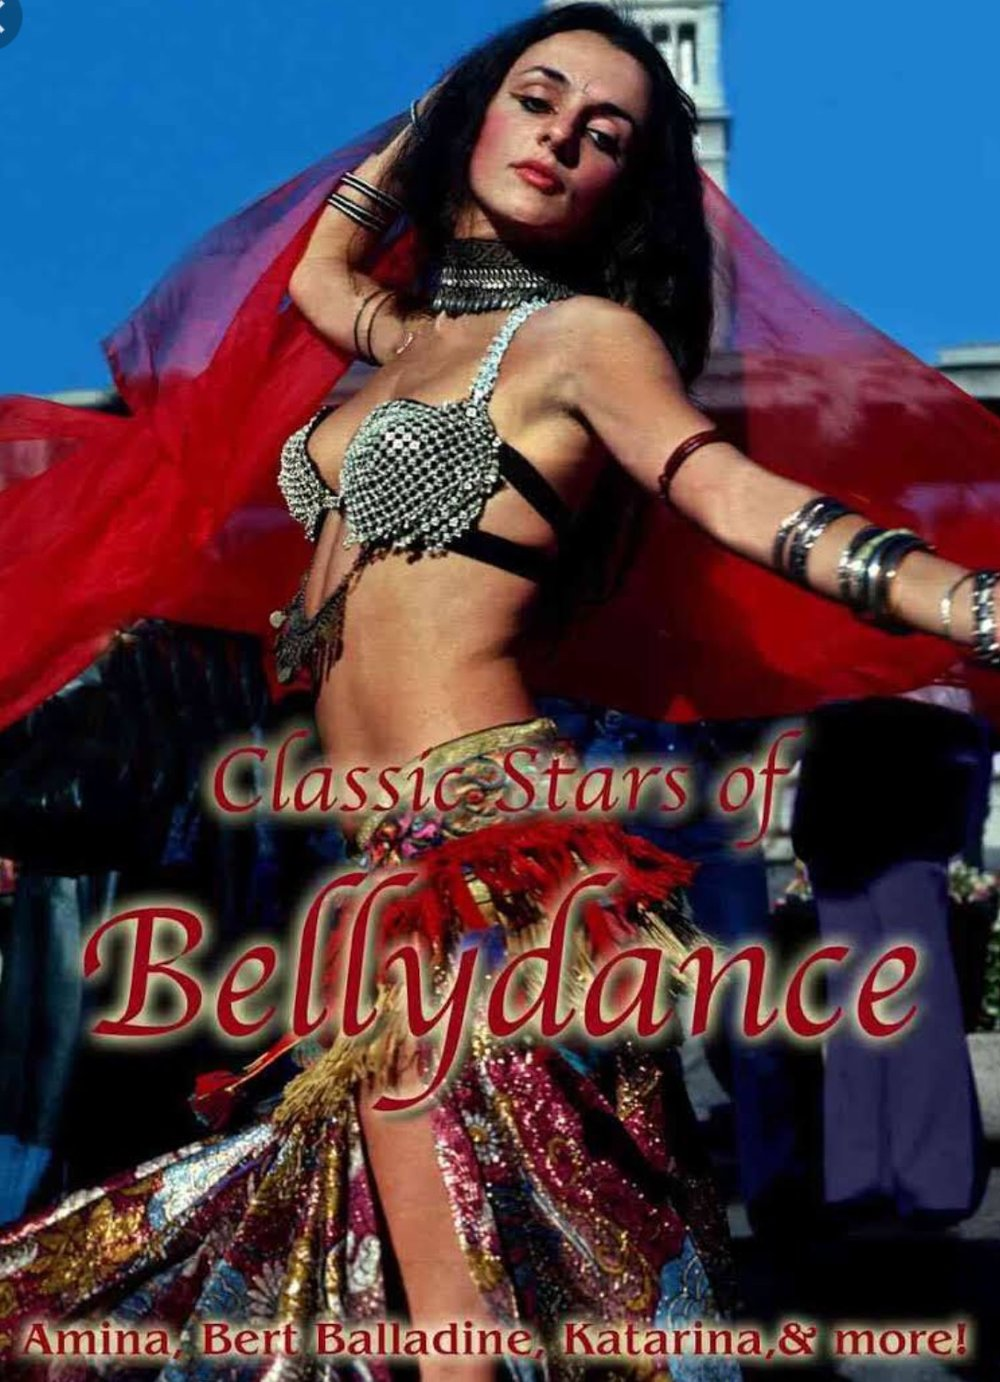 "Filmed in 1974 and released in 1976 under the title ""Gameel Gamal"" (Oh! Beautiful Dancer), Gordon Inkeles' 25 minute short played several film festivals and then vanished for 30 years. It presents a brief history of belly dancing, then the story of two young dancers, Katarina (pictured) and Taia, who are breaking into an apparently thriving belly dance scene in San Francisco. The new title is appropriate. The film contains entire belly dances by Katarina and Taia, and also by their senior, Amina, who tells them they should perform as if dancing for a king. We later see her dance, and that's exactly what she does. Though short, the film is a satisfying introduction to belly-dance aesthetics, in that each of these classic dancers brings a special quality, a special talent and a slightly different approach to her work. But the film is something more, an unexpectedly touching document of this city a generation ago. I found out about the film because (full disclosure) I'm a friend of Katarina's -- known today as Stanford acting teacher Kay Kostopoulos and as the vocalist for Black Olive Jazz. I'm glad I did, because even beyond the belly-dance aspect, there's something magical and wistful about traveling in this time machine and finding yourself on some lost yet vibrant afternoon, watching De Ann Adams (Miss Sonoma County 1968) perform an extended dance by the Embarcadero. Not everyone will be moved, but if you loved the '70s, you'll understand.""  Review by Mick LaSalle of the San Francisco Chronicle, Sunday, July 1, 2007.   Paypal $15 includes postage if in U.S. If outside of U.S. please email to determine postage fees to include in paypal. Please specify product and include your shipping address."